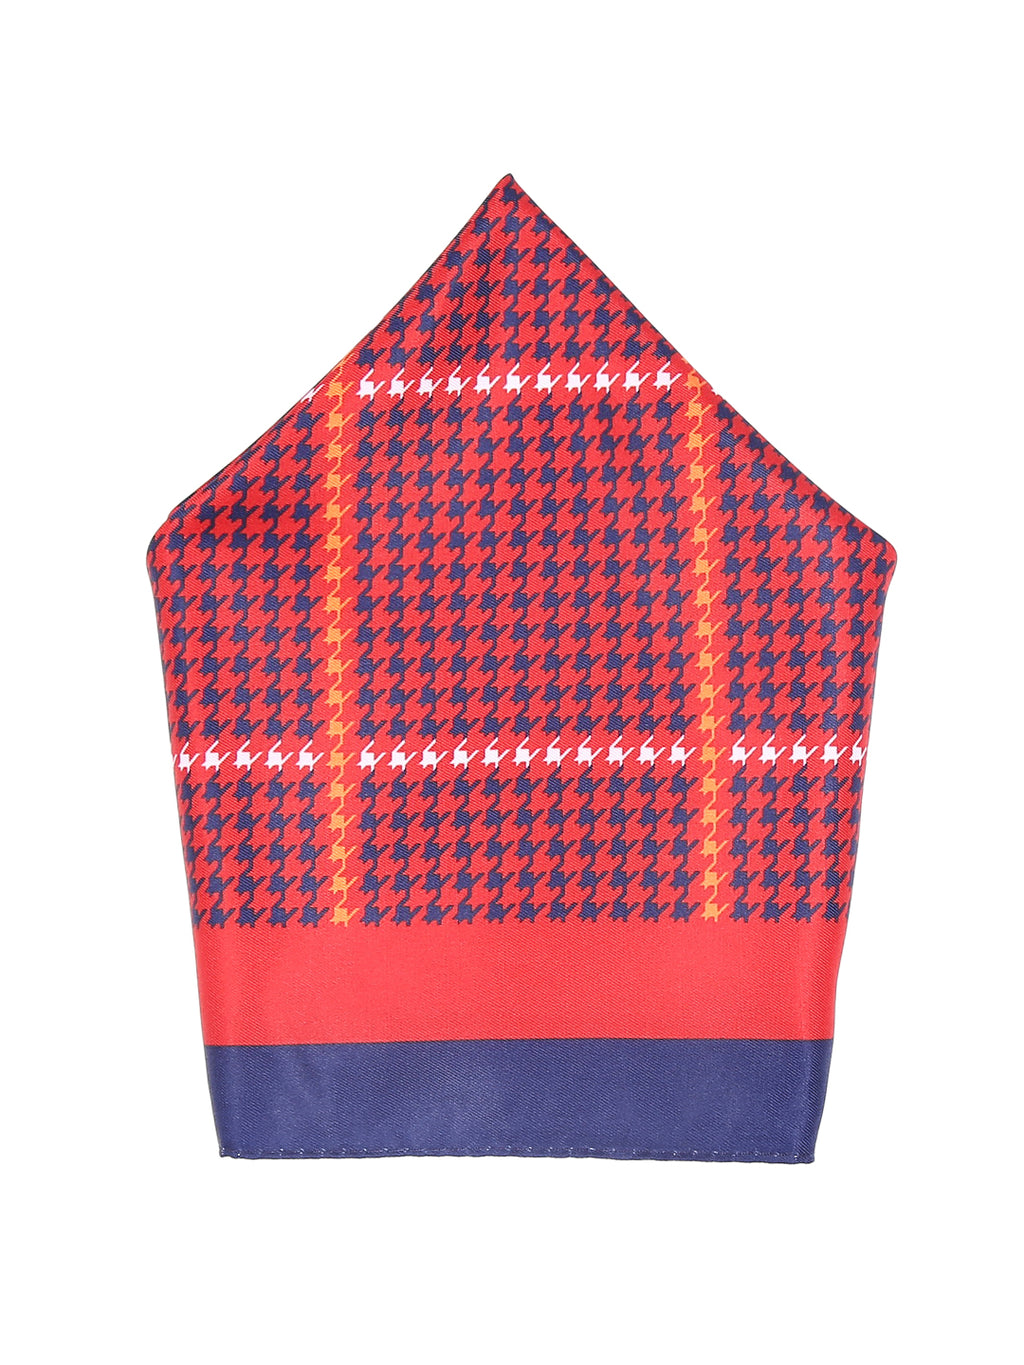 Zido Pocket Square for Men PSQ226